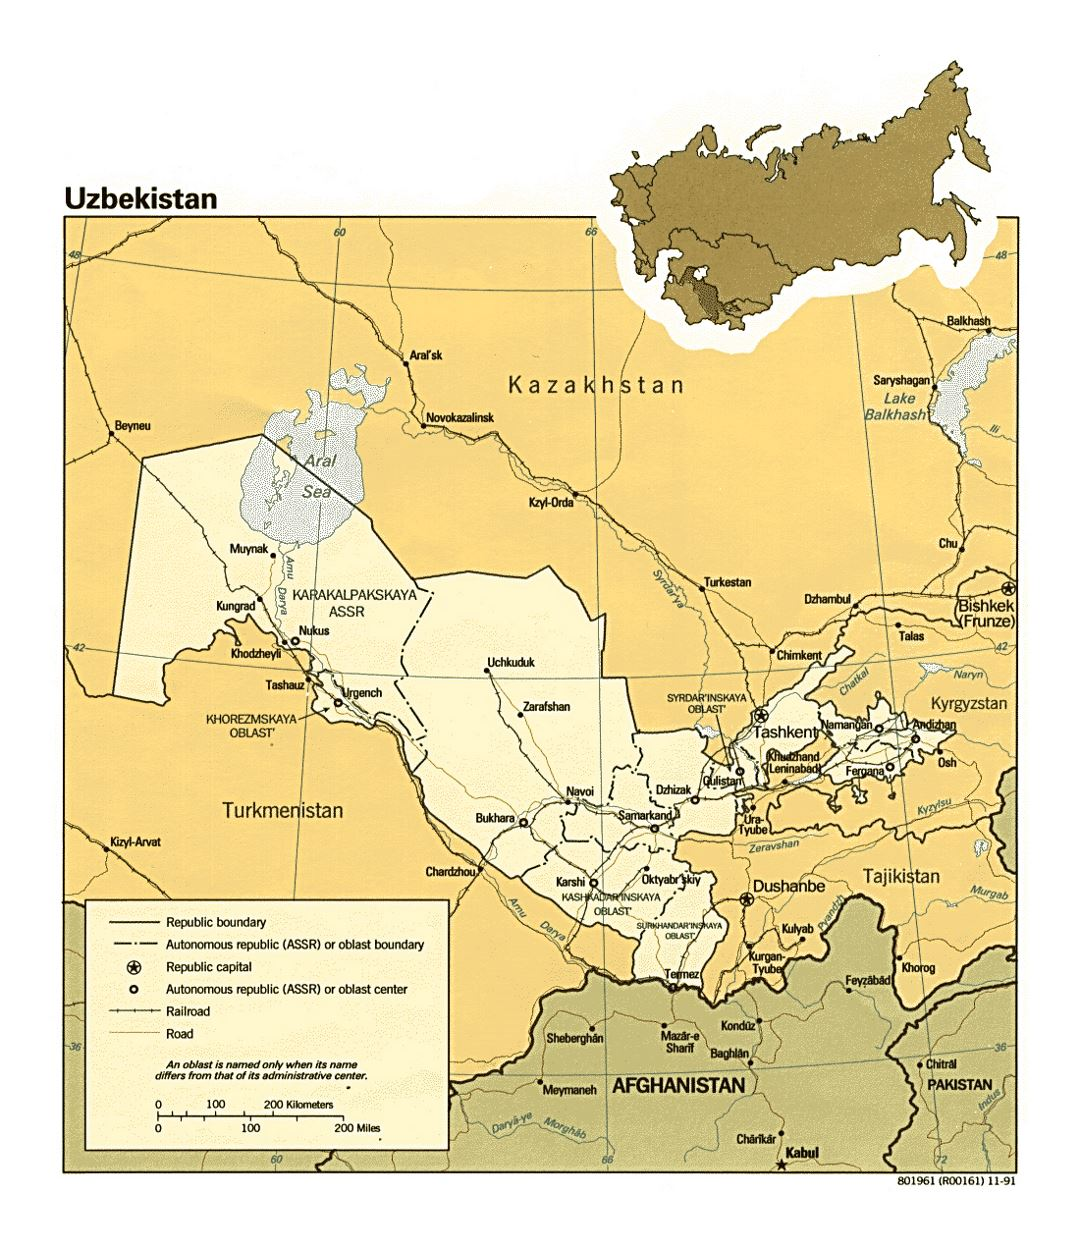 Detailed political and administrative map of Uzbekistan with roads, railroads and major cities - 1991